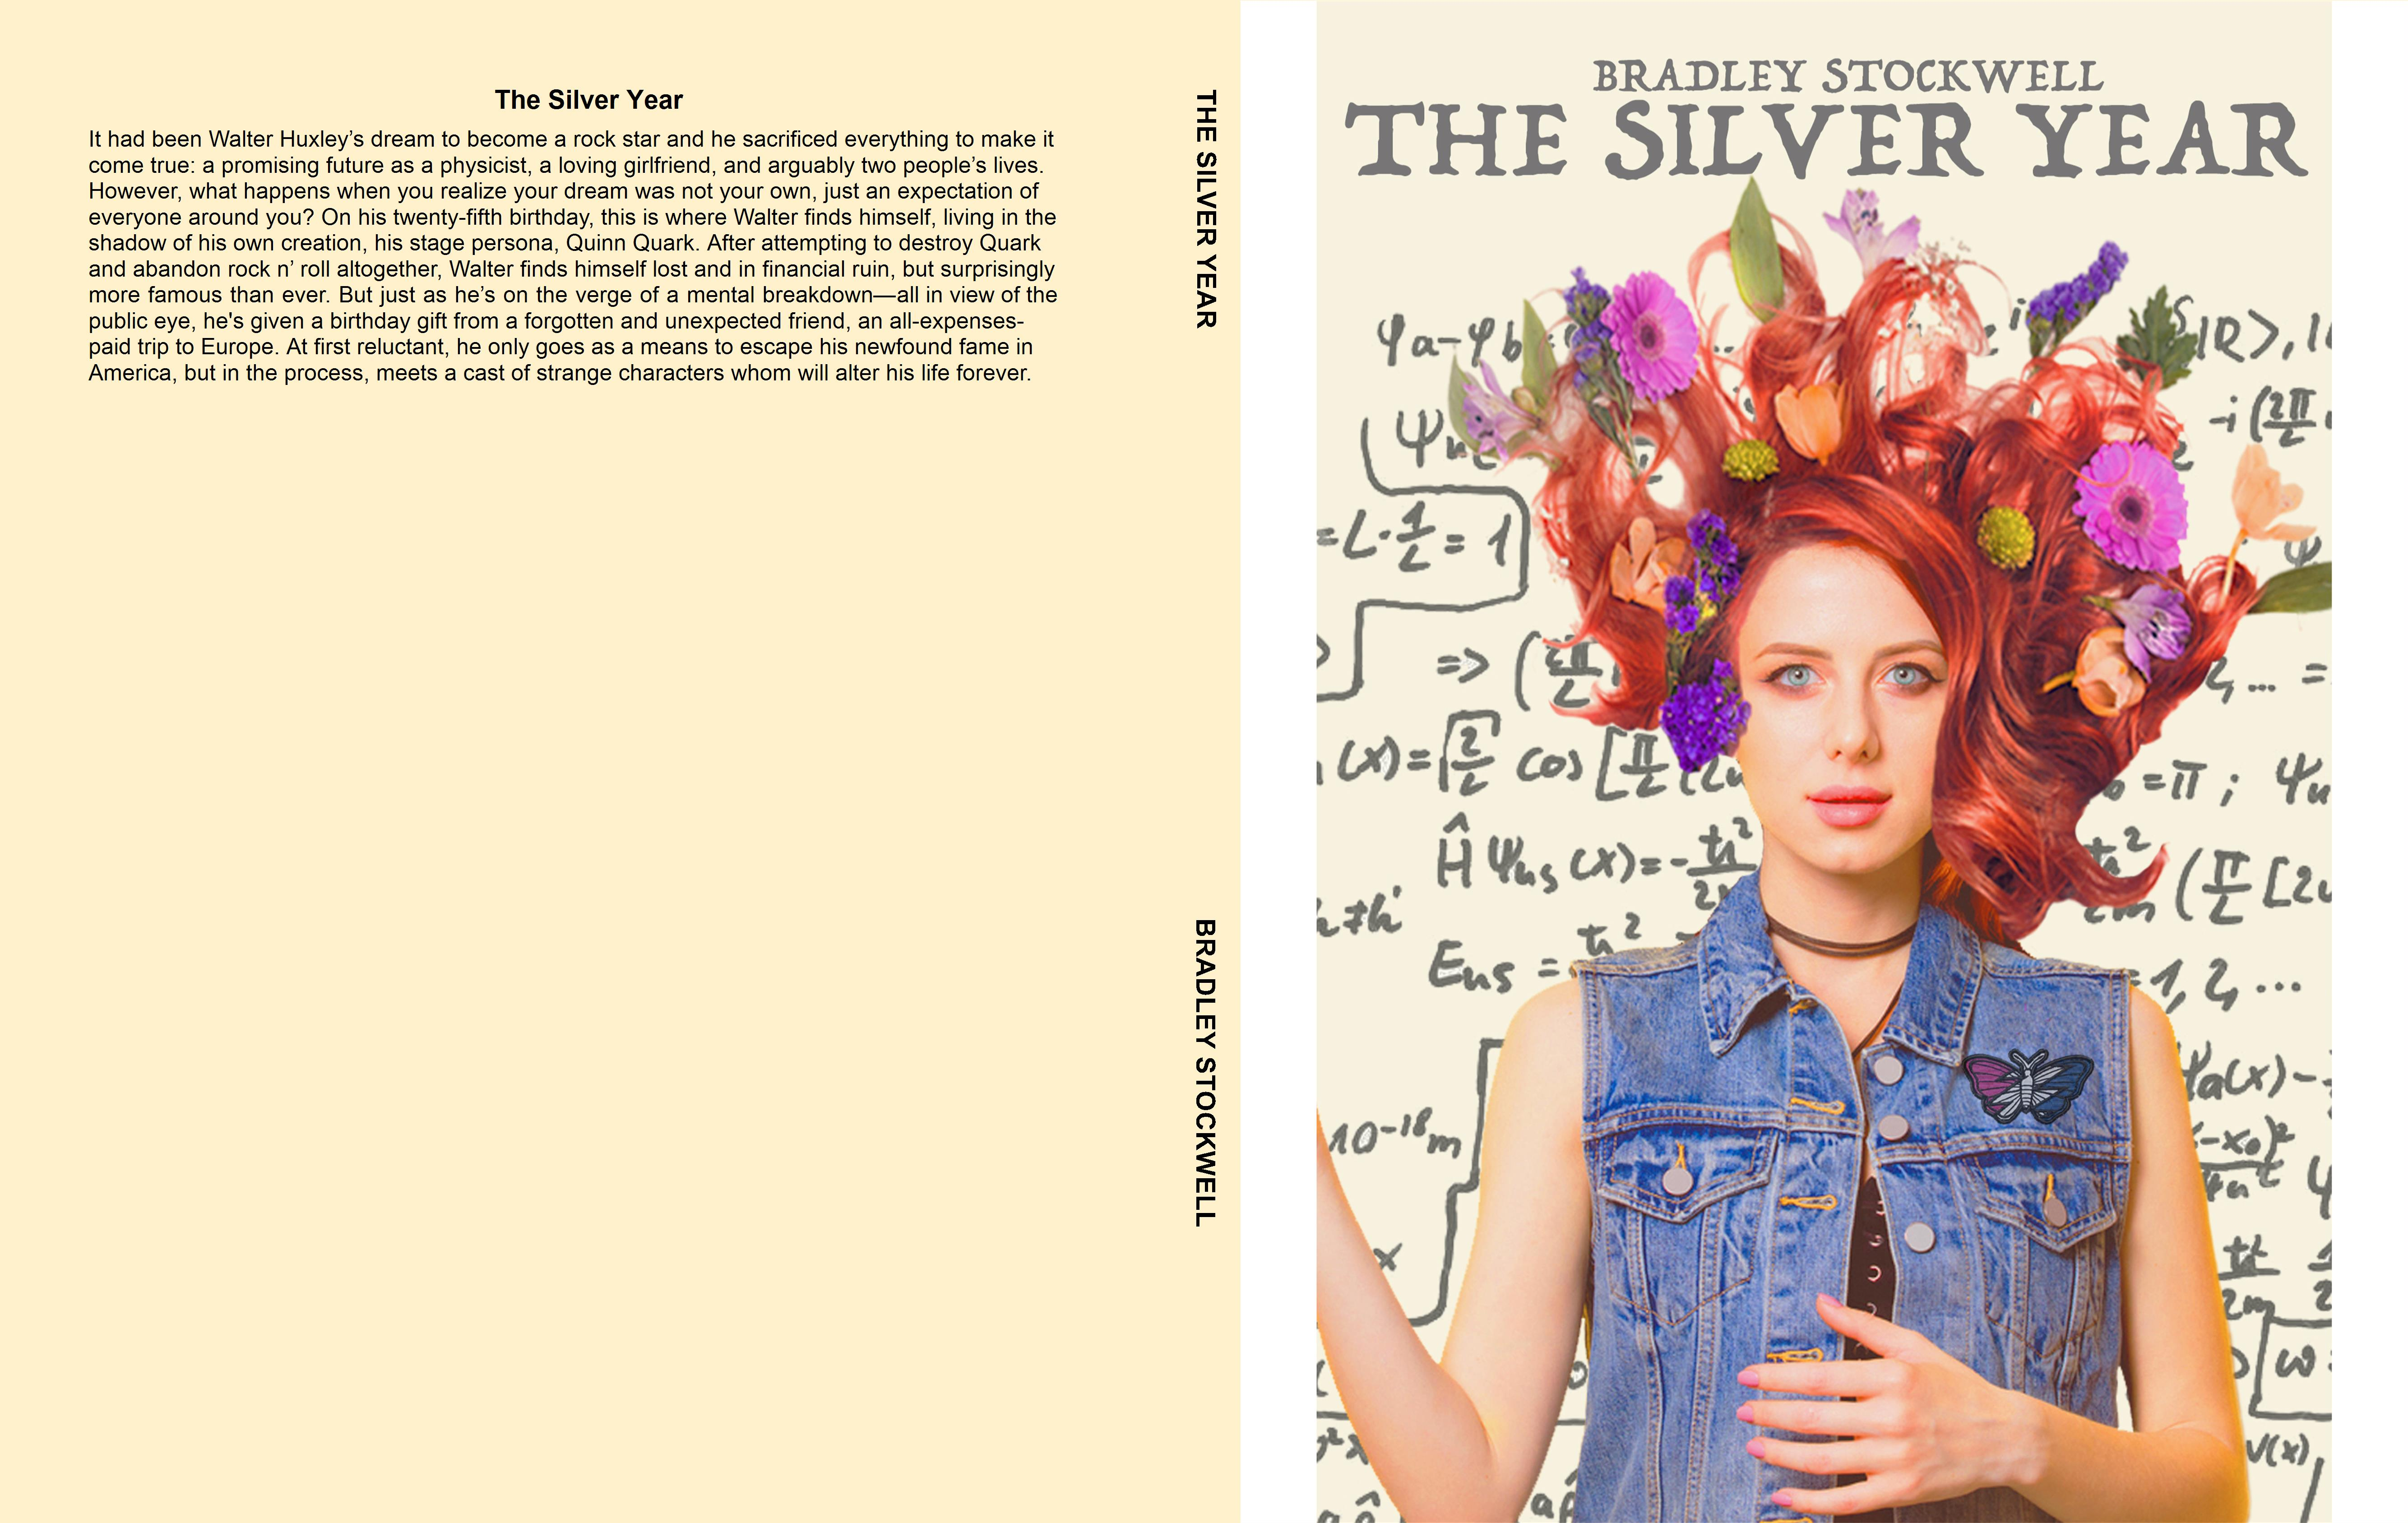 The Silver Year cover image